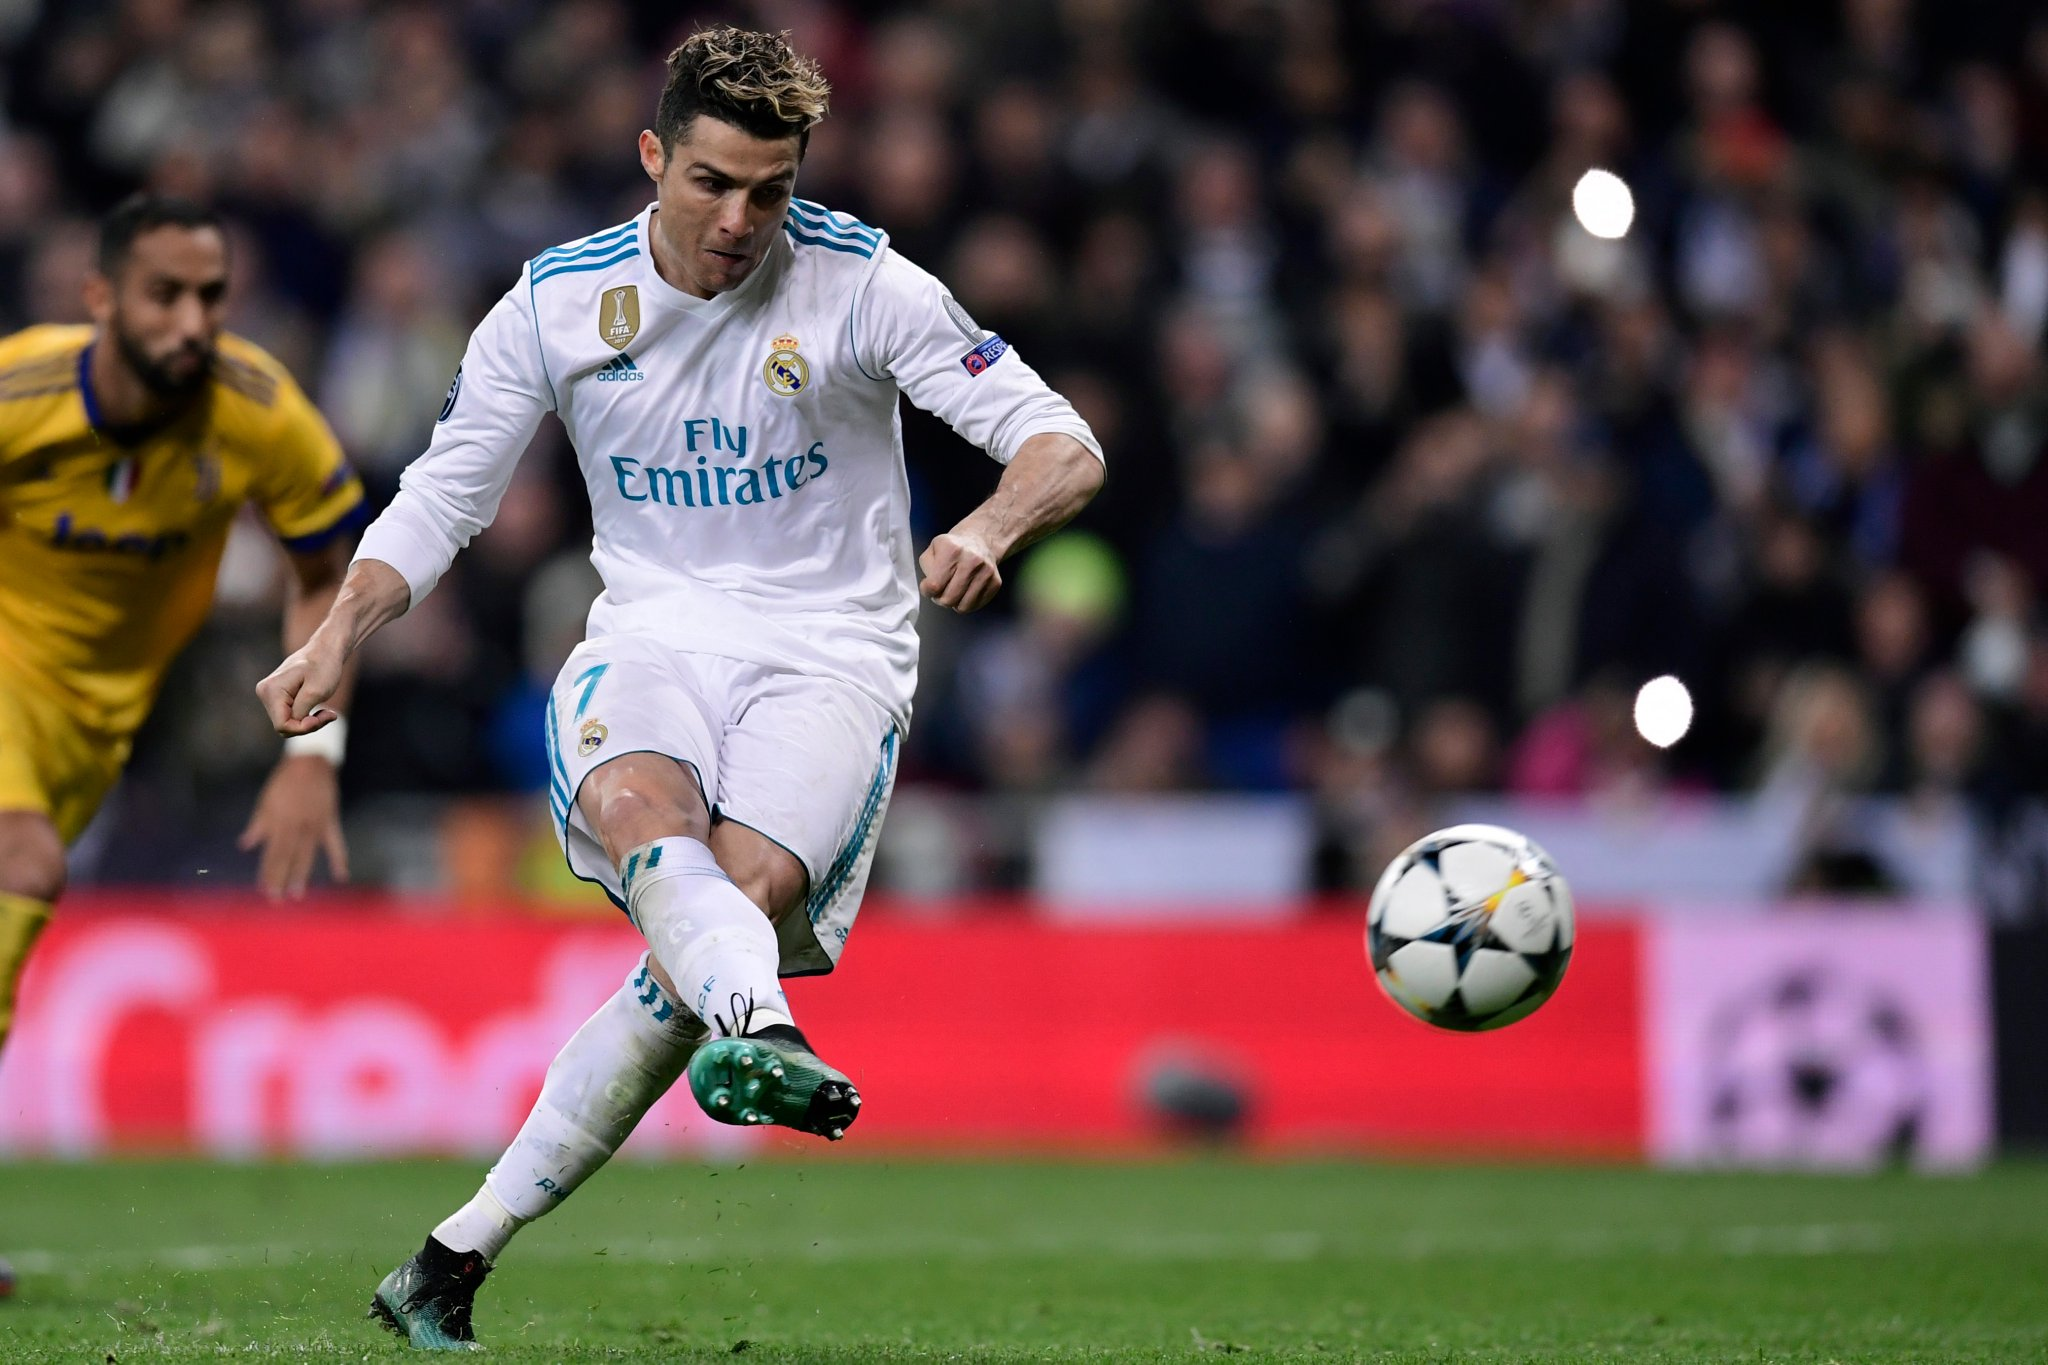 UCL: Real Madrid Survive Juventus Scare To Reach Semis, Bayern Advance